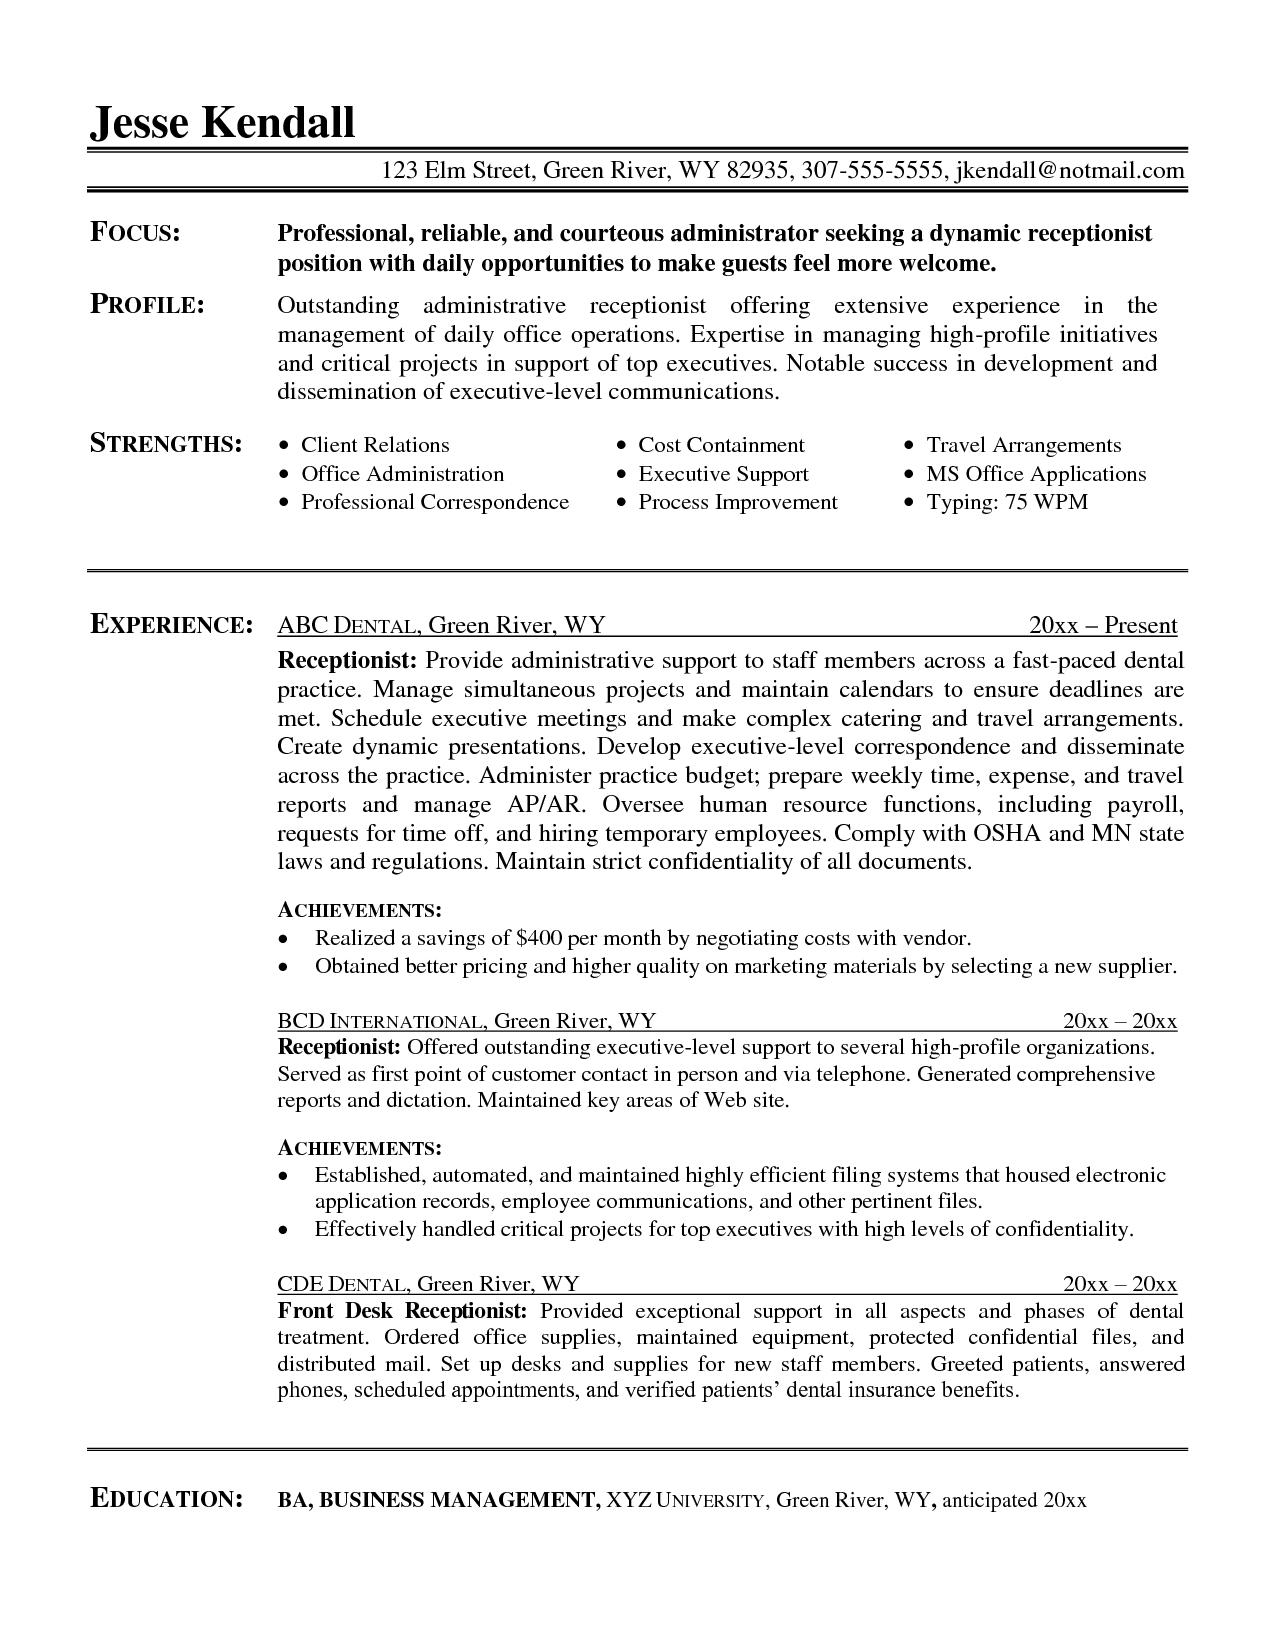 Sample Receptionist Resume Example | resume | Job resume samples ...